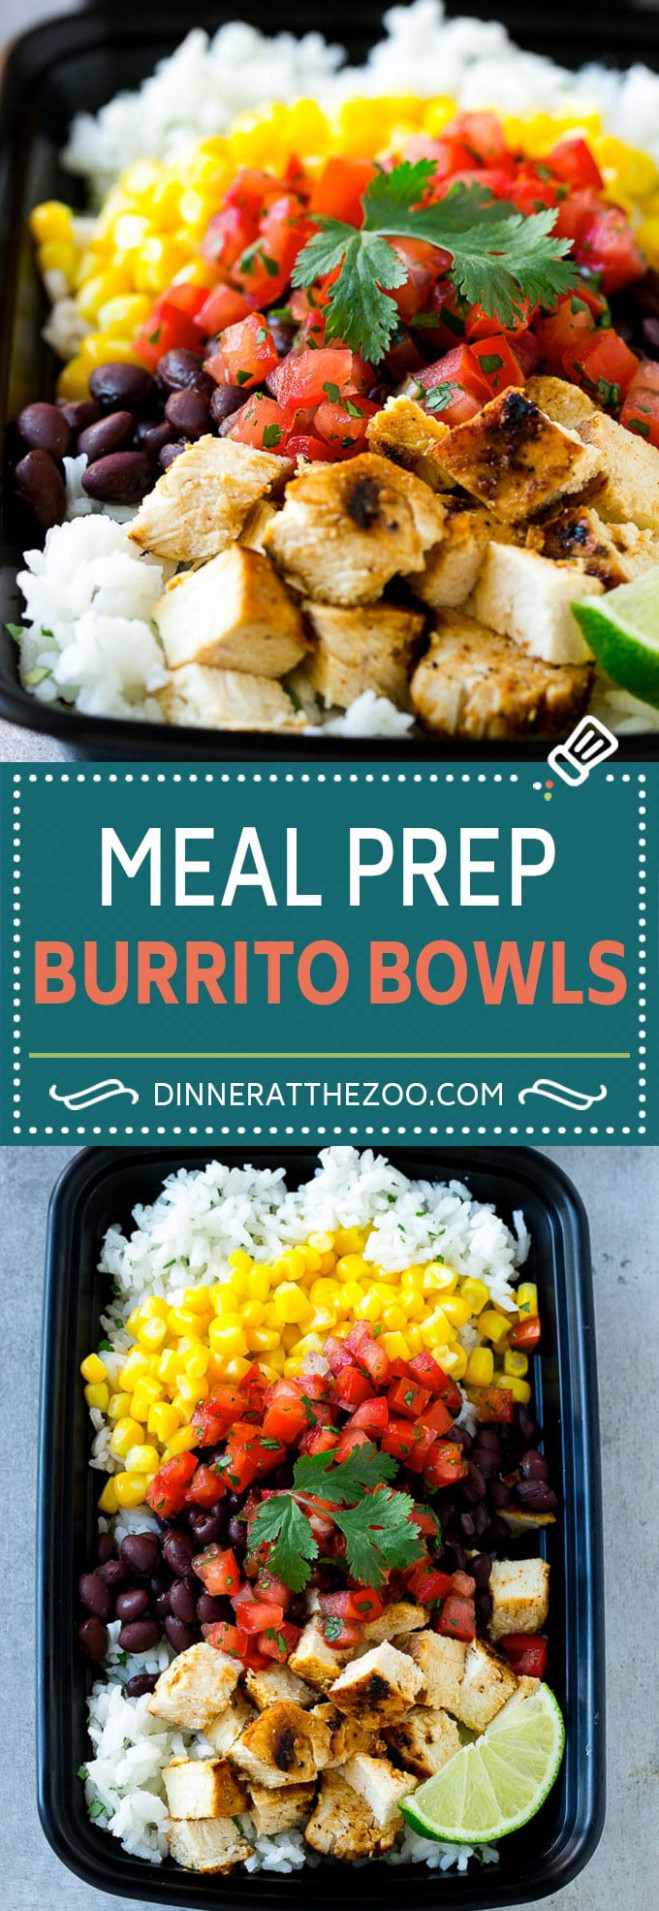 10 Easy Meal Prep Recipes - Dinner At The Zoo - Healthy Meal Recipes